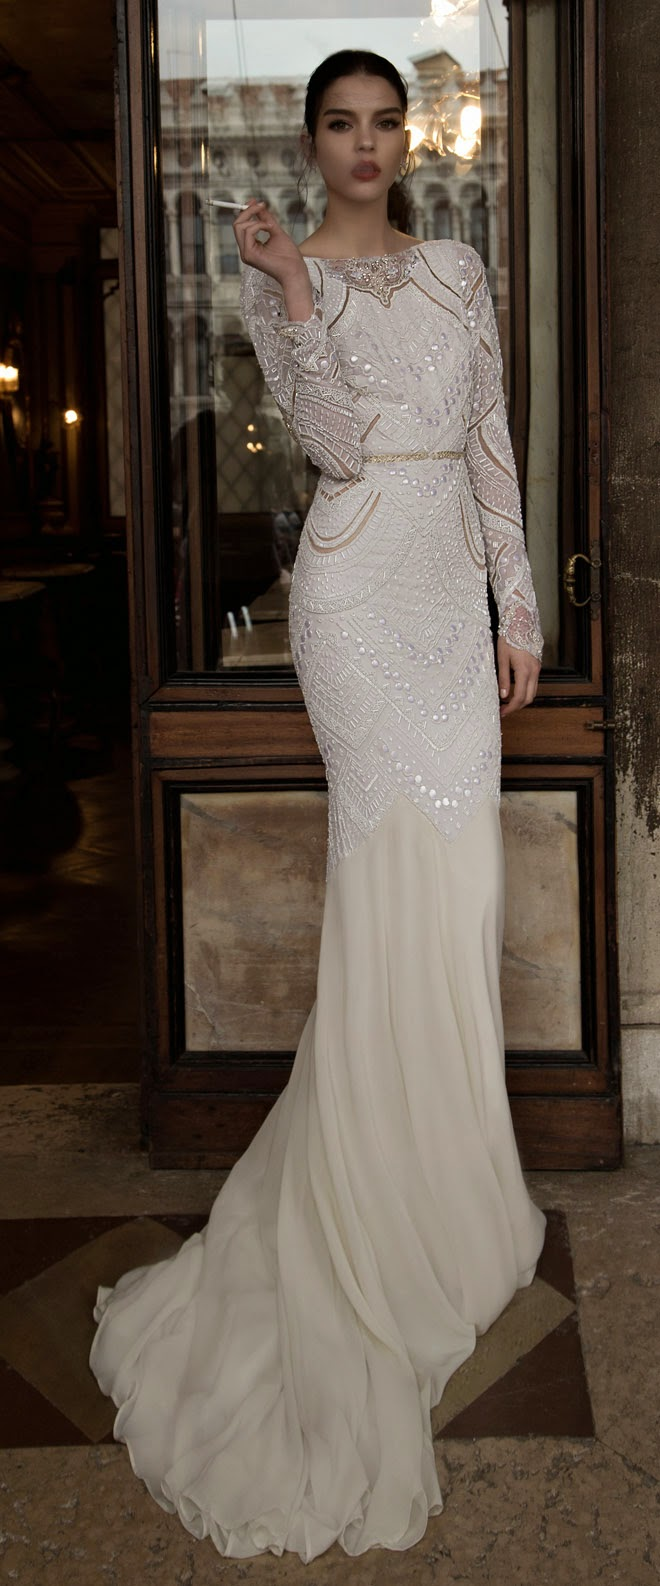 Inbal dror bridal collection 2015 altercouture for Israeli wedding dress designer inbal dror